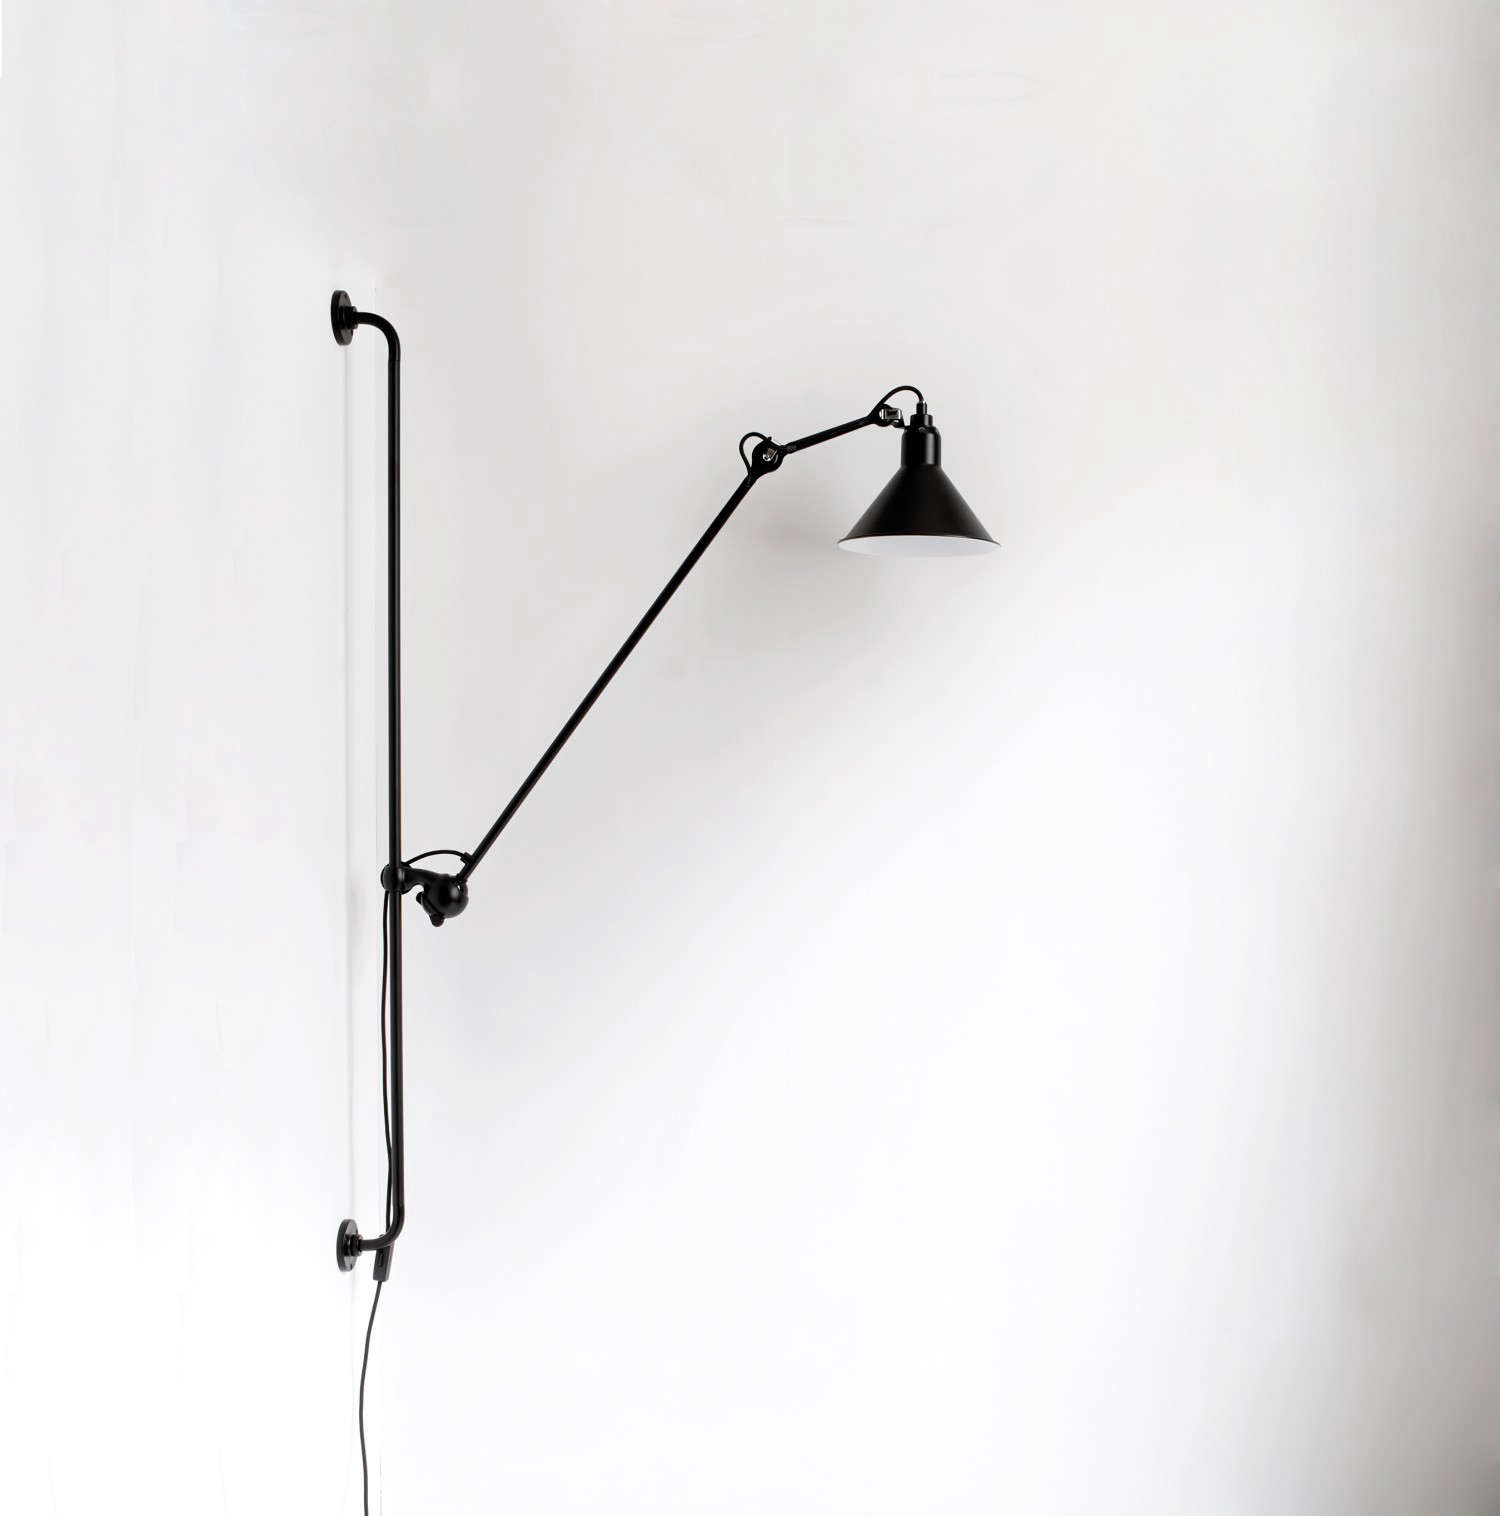 lampe gras model 214 wall lamp. Black Bedroom Furniture Sets. Home Design Ideas